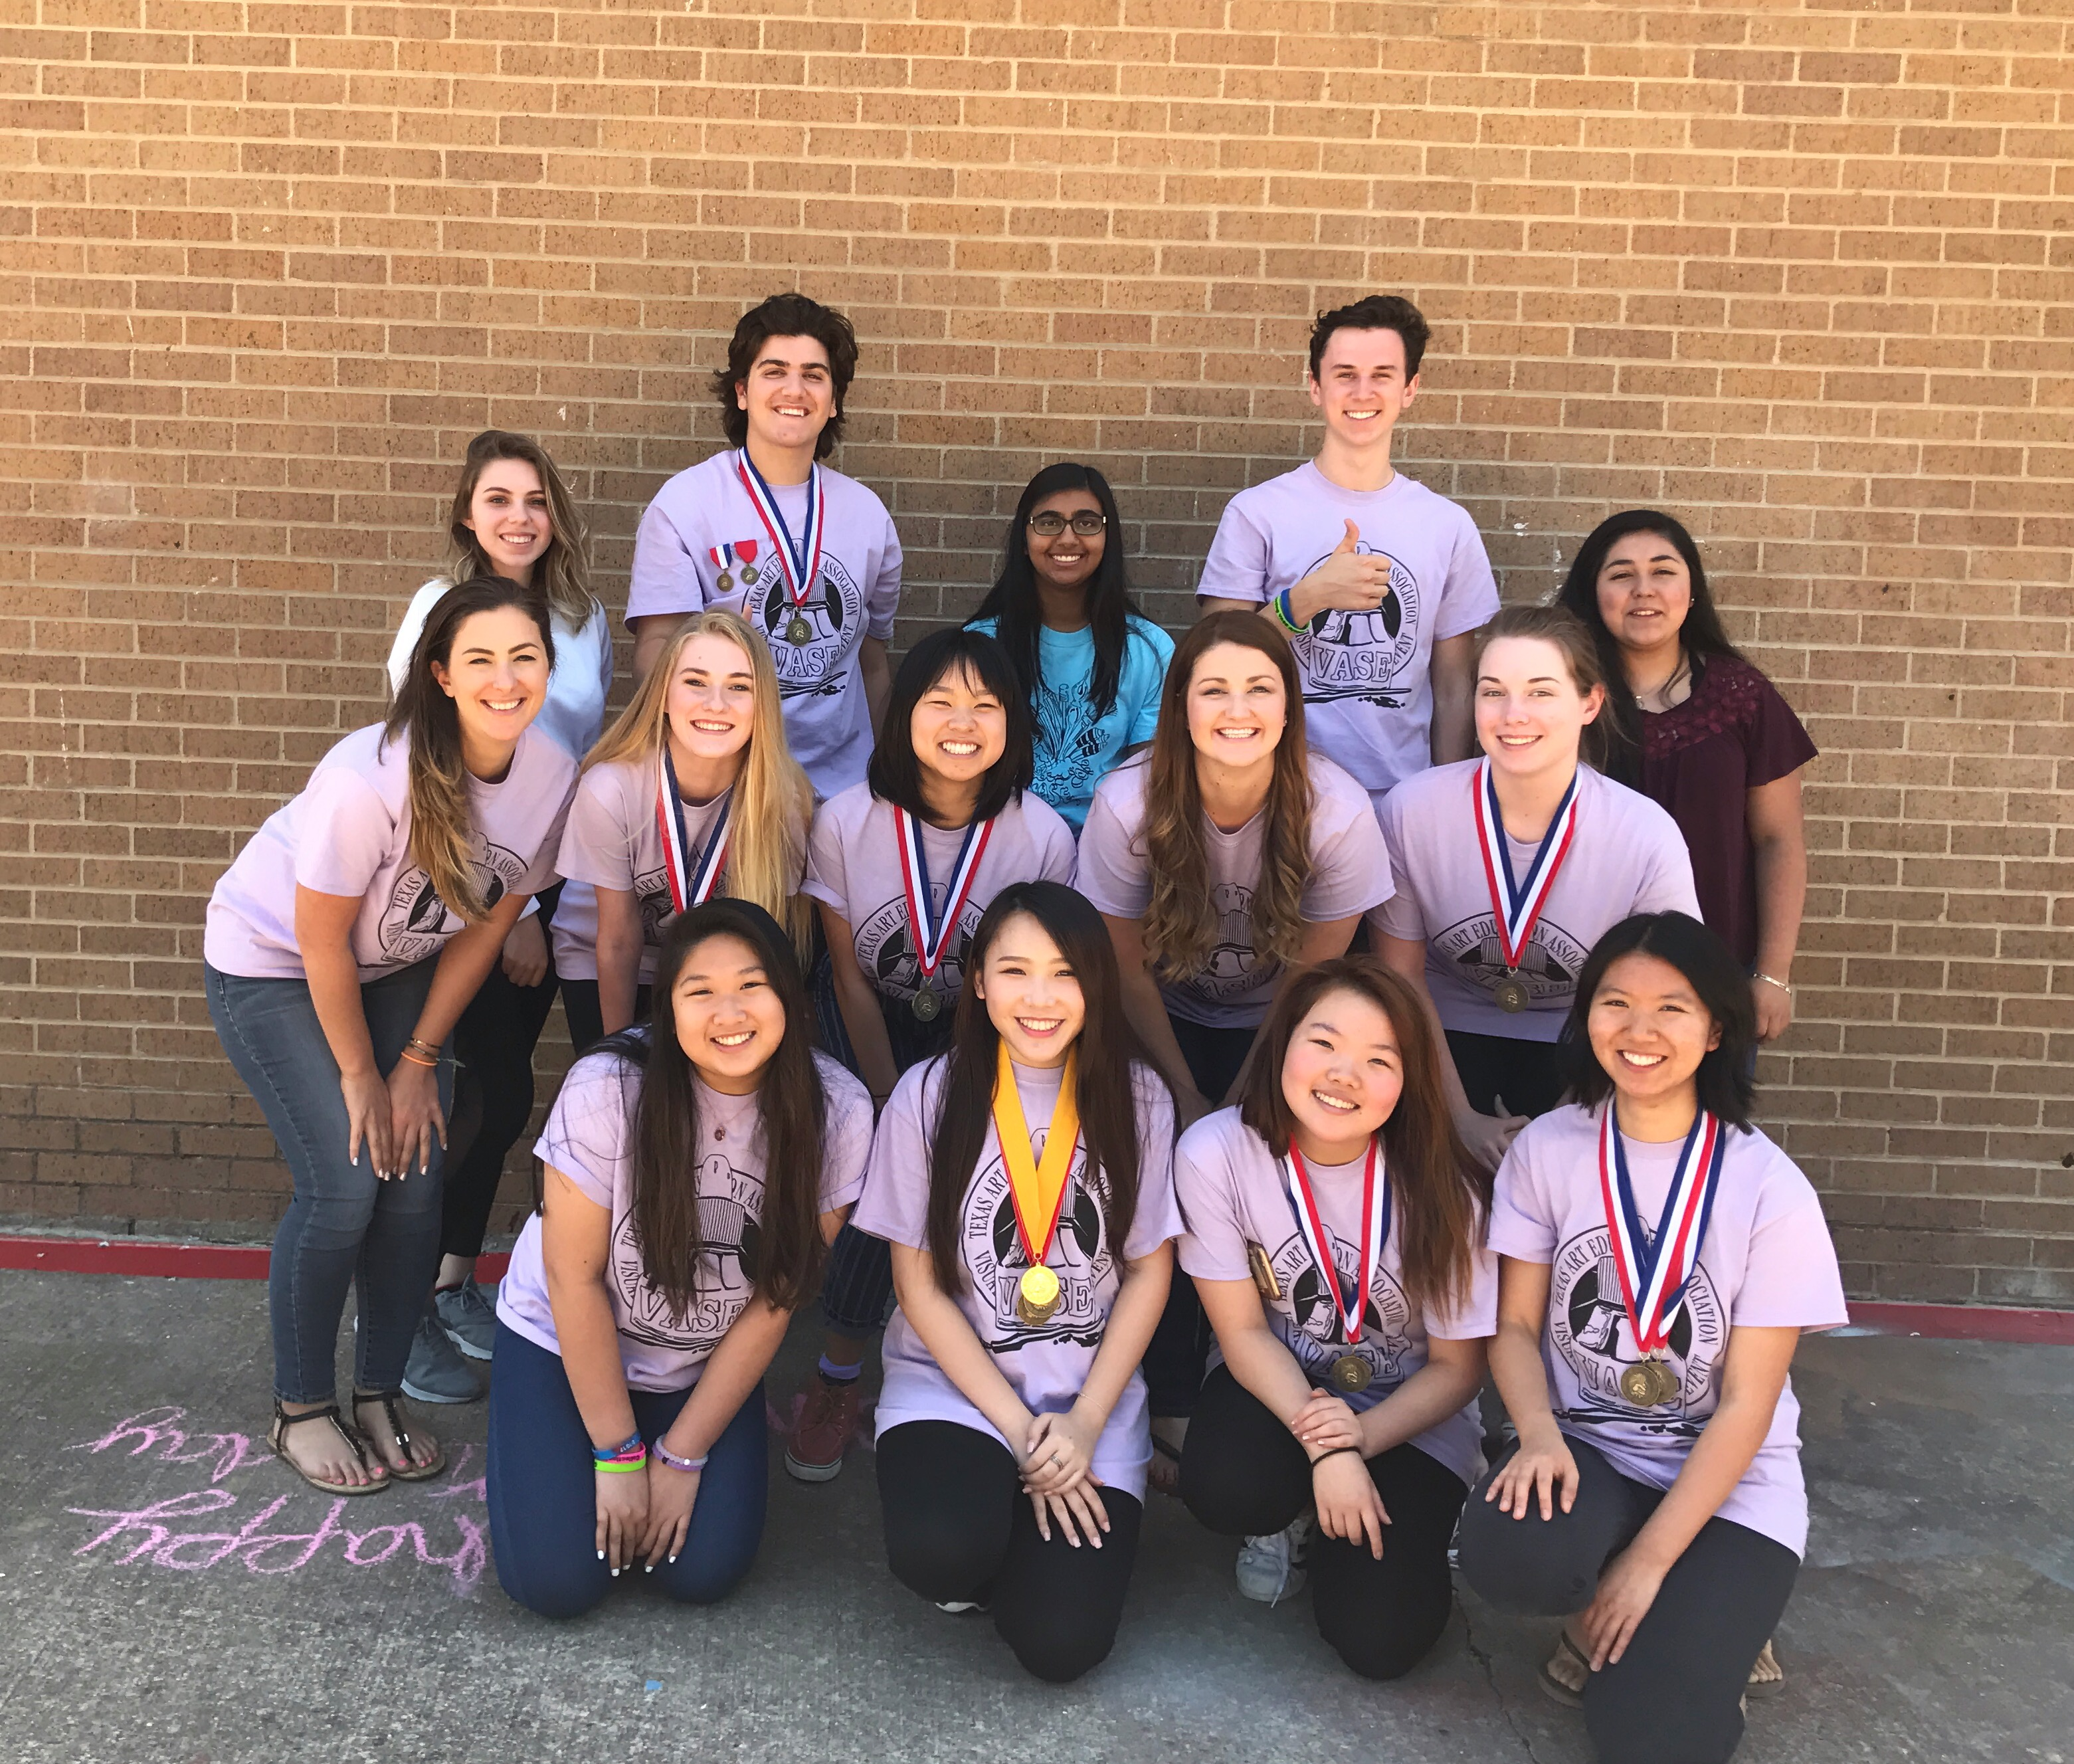 Plano isd headlines detail page shepton high school state vase medalist reviewsmspy